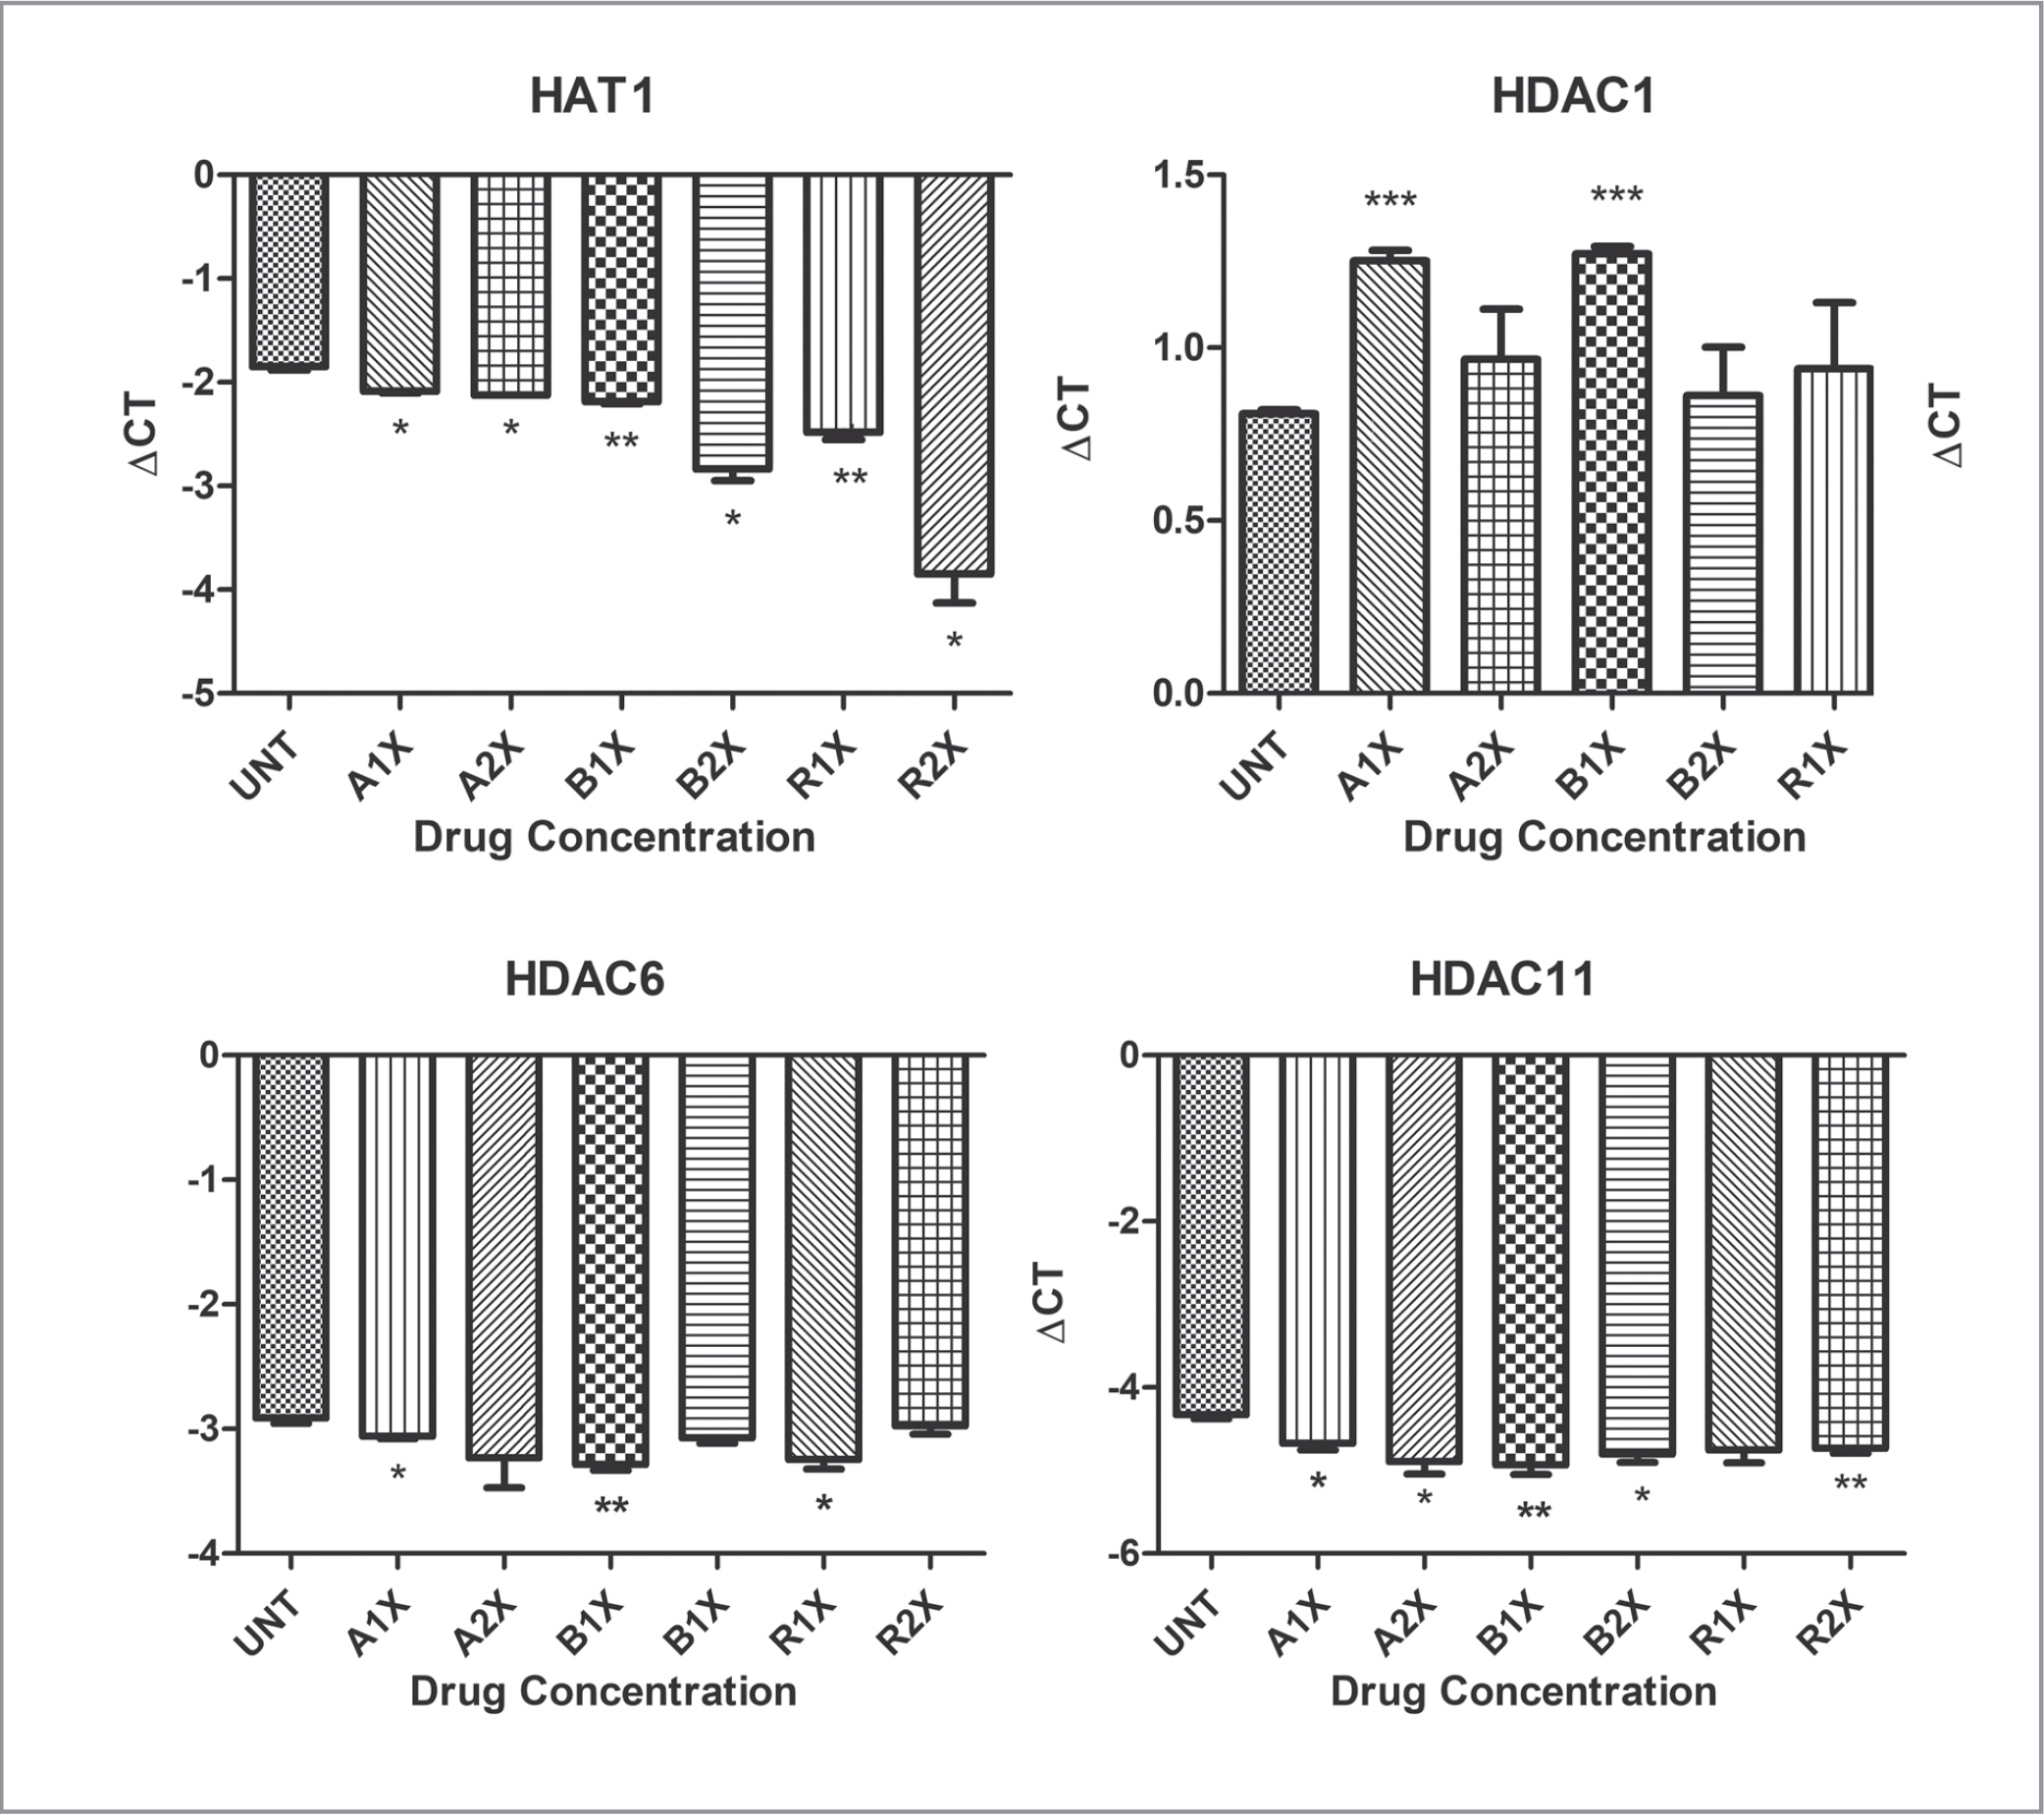 Expression profiles for histone acetylation genes in untreated and anti-vascular endothelial growth factor treated human retinal pigment epithelium cell (ARPE-19) cultures.*P < .05; **P < .01; ***P < .001CT = difference in cycle thresholds; A1X = aflibercept at one time the concentration of clinical intravitreal dose; A2X = aflibercept at two times the concentration of clinical intravitreal dose; B1X = bevacizumab at one time the concentration of clinical intravitreal dose; B2X = bevacizumab at two times the concentration of intravitreal clinical dose; HAT = histone acetyltransferase; HDAC = histone deacetylase; R1X = ranibizumab at one time the concentration of clinical intravitreal dose; R2X = ranibizumab at two times the concentration of clinical intravitreal dose; UNT = untreated.